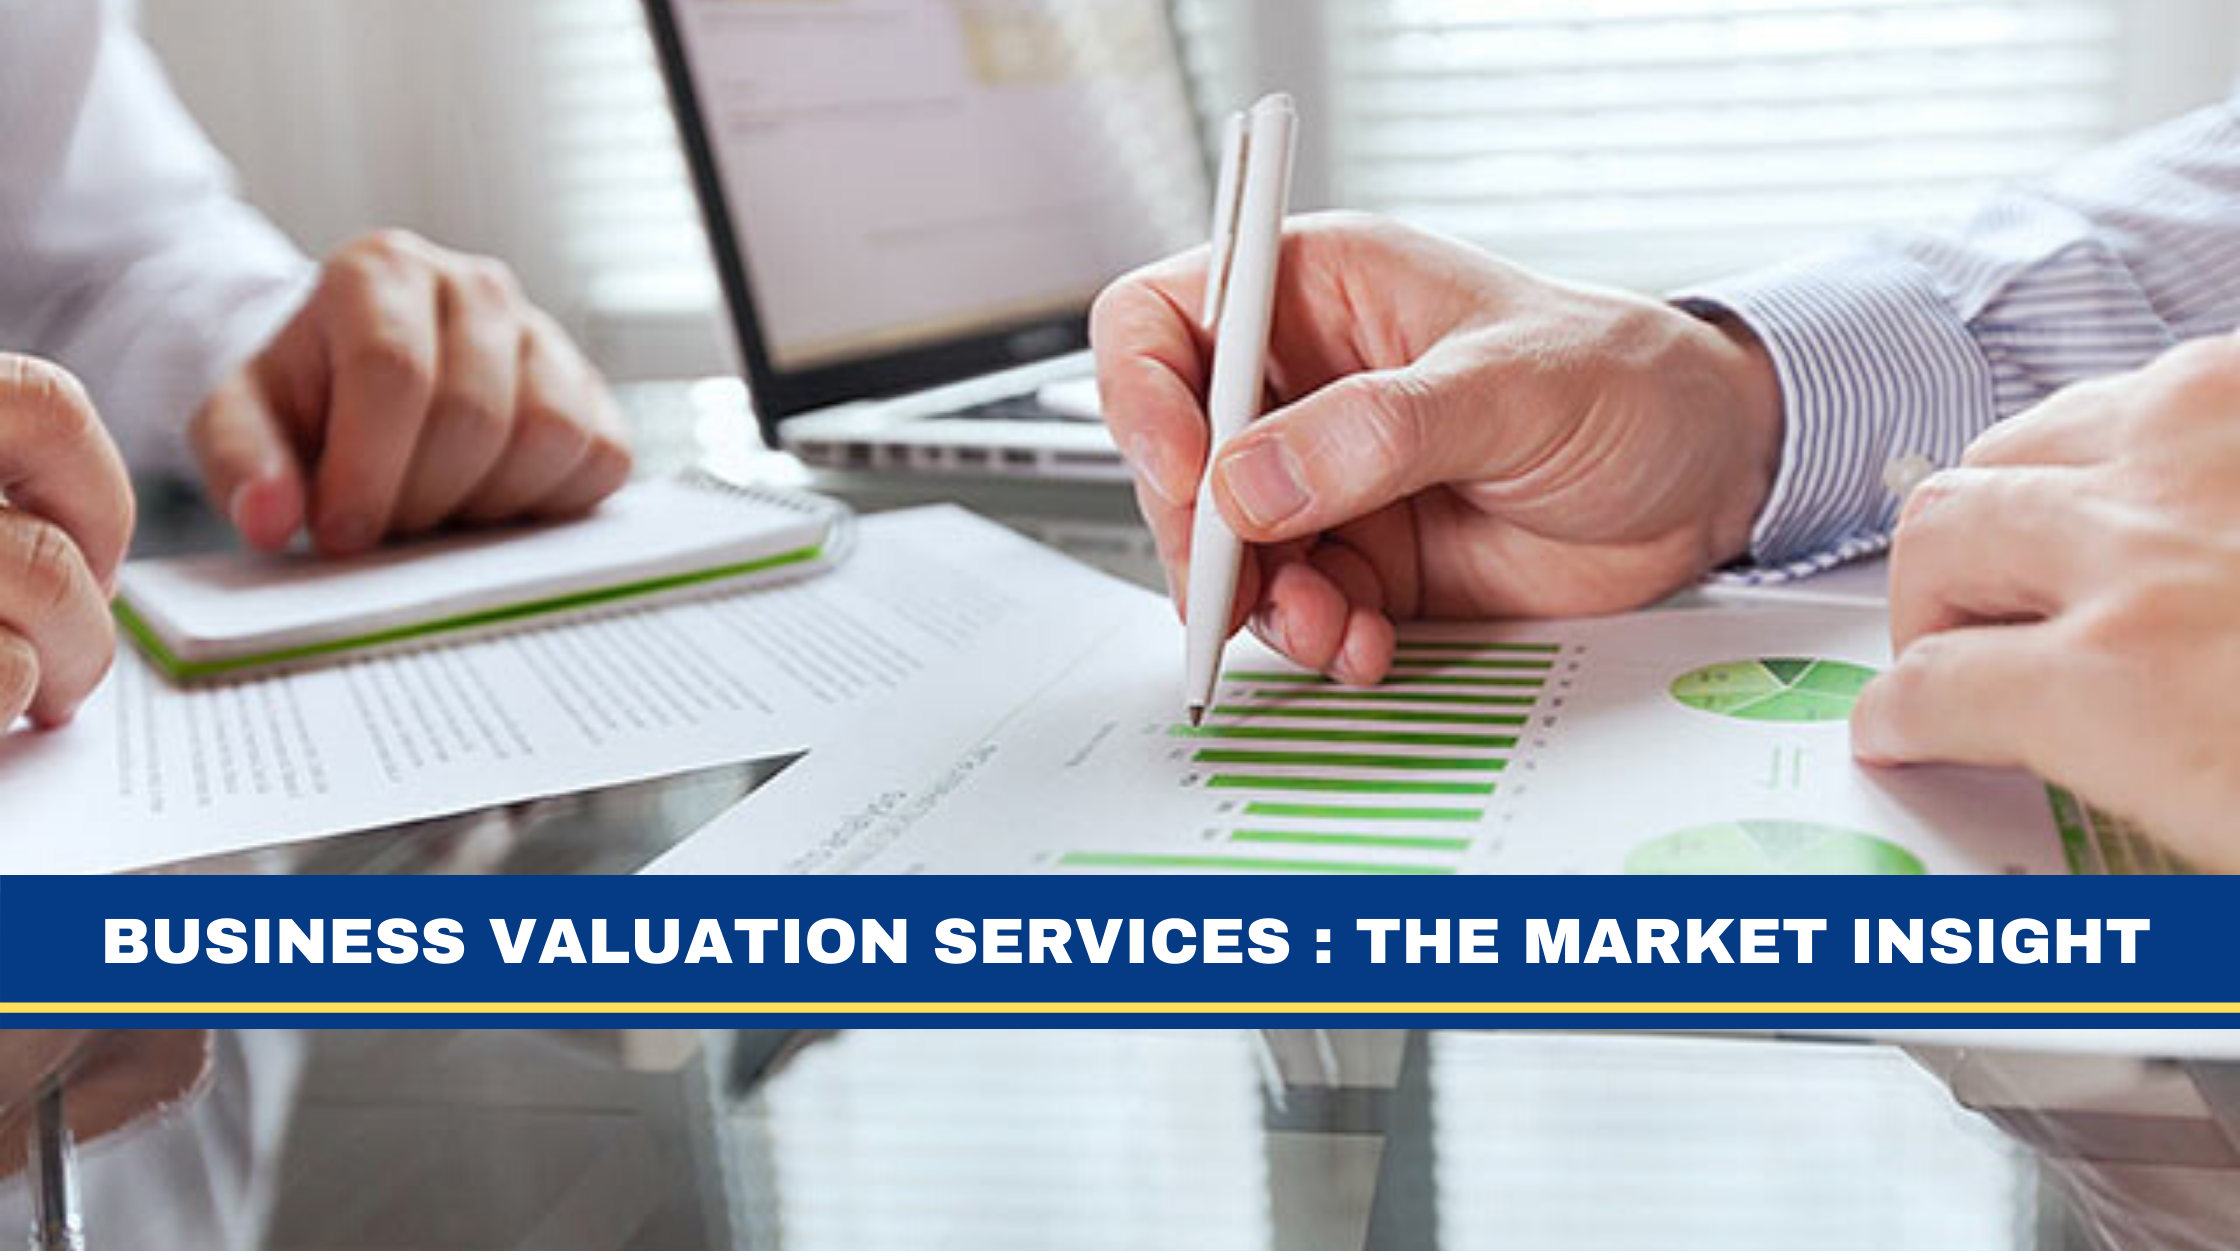 Business Valuation Services : The Market Insight